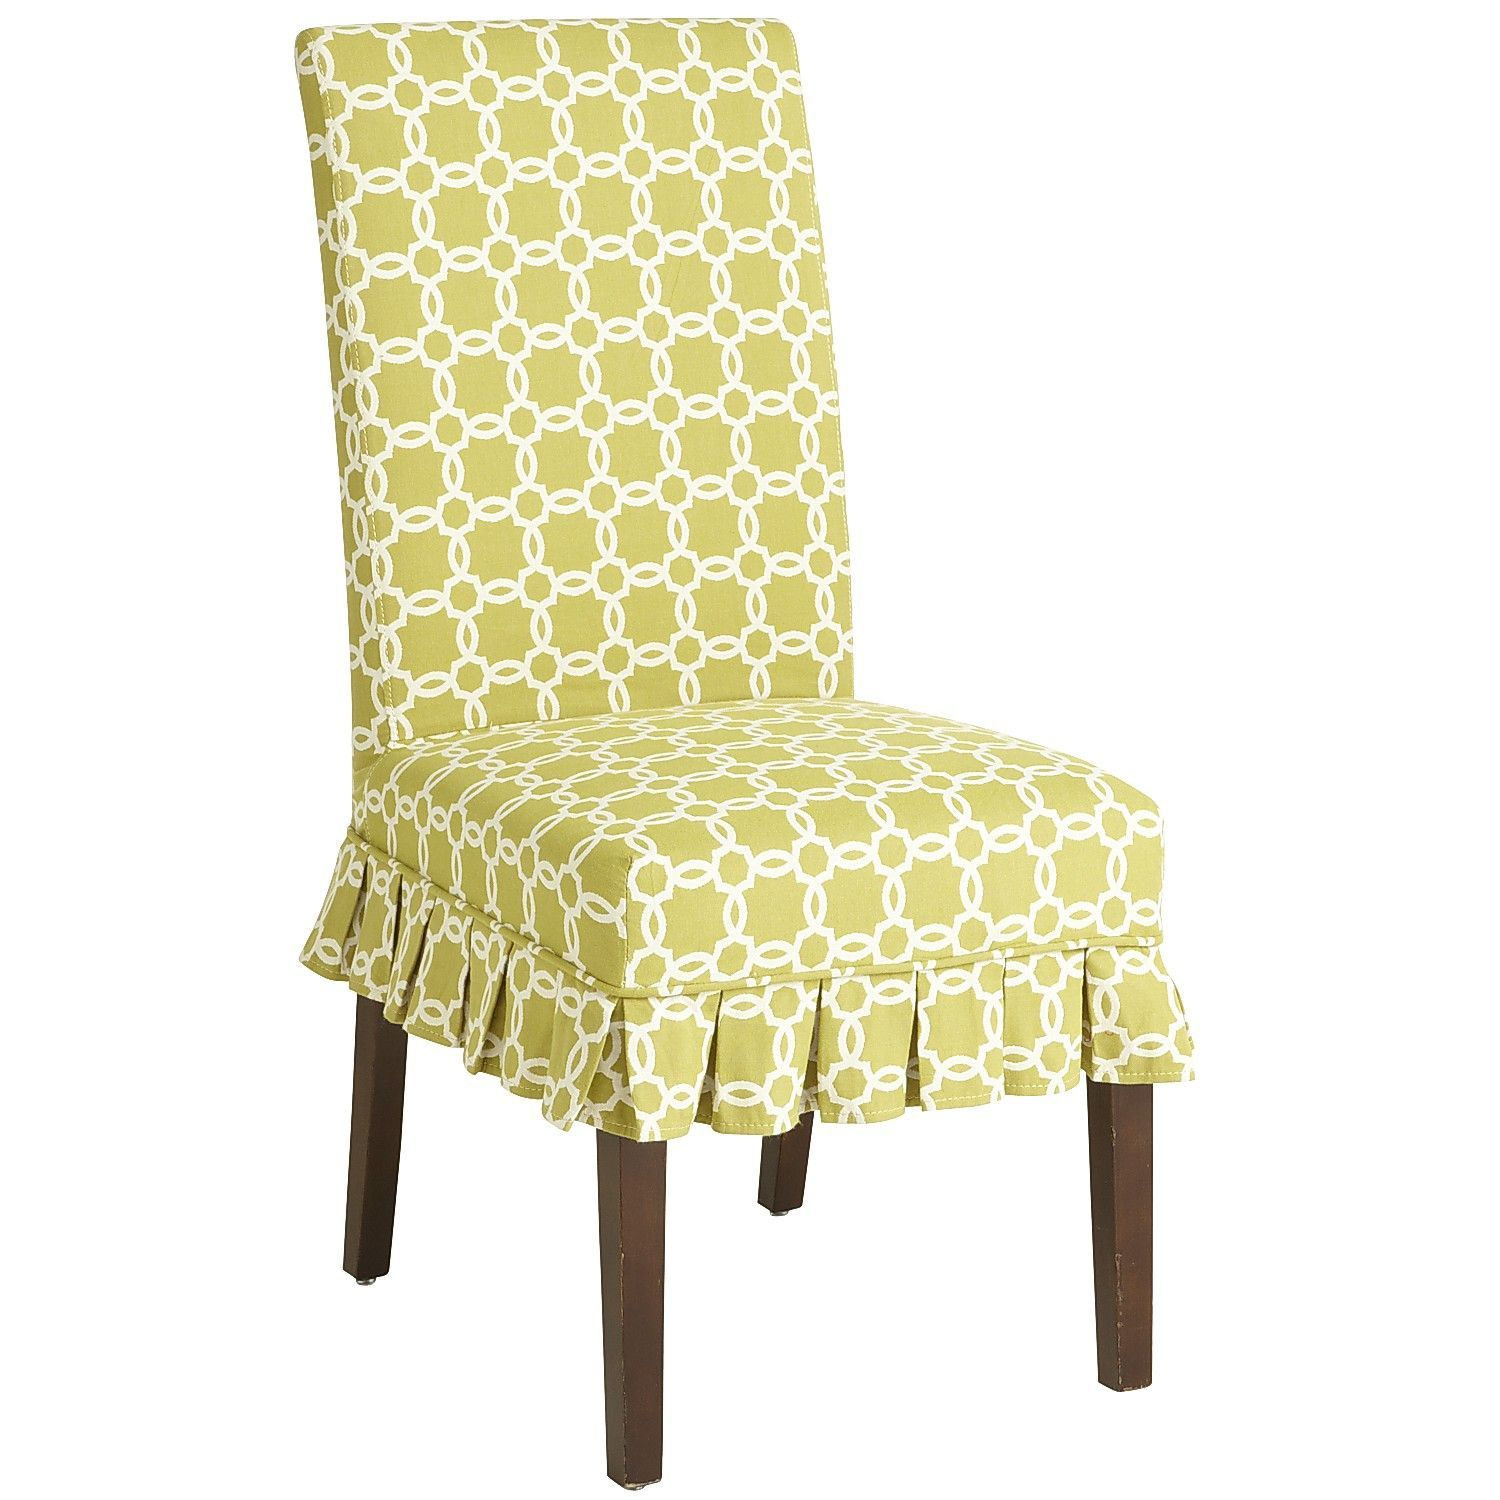 Green Chair Covers Dana Parsons Dining Chair Green Geometric Slipcover